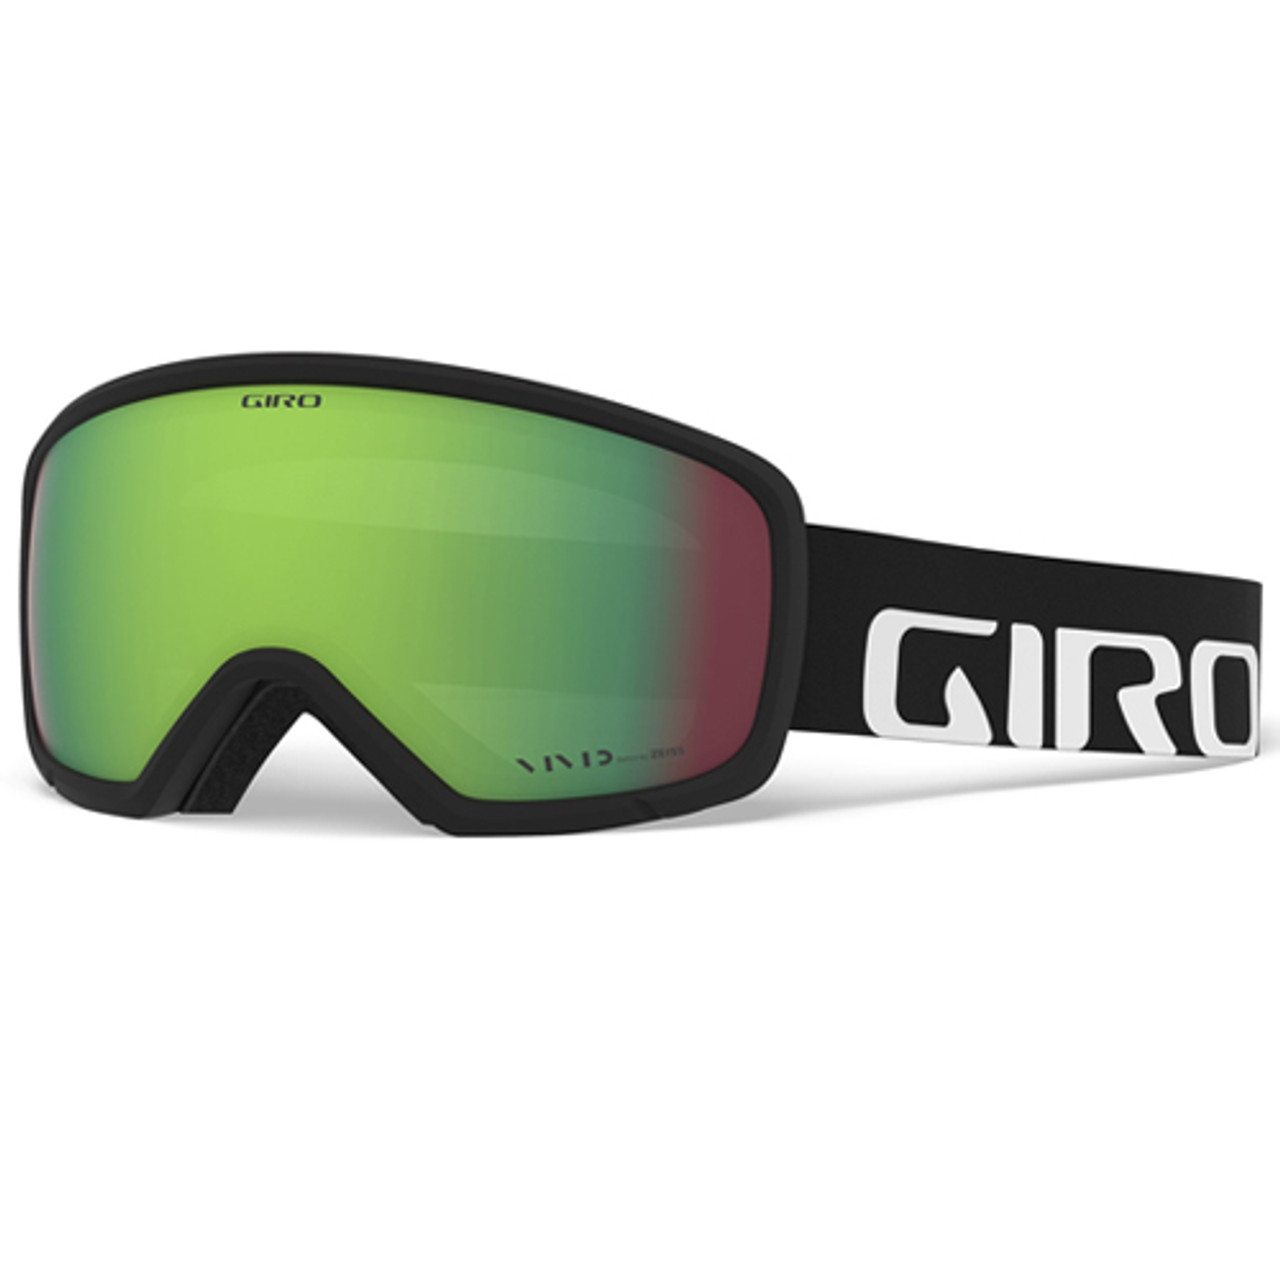 Giro Ringo and Ringo Jr Snow Goggle Replacement Lens